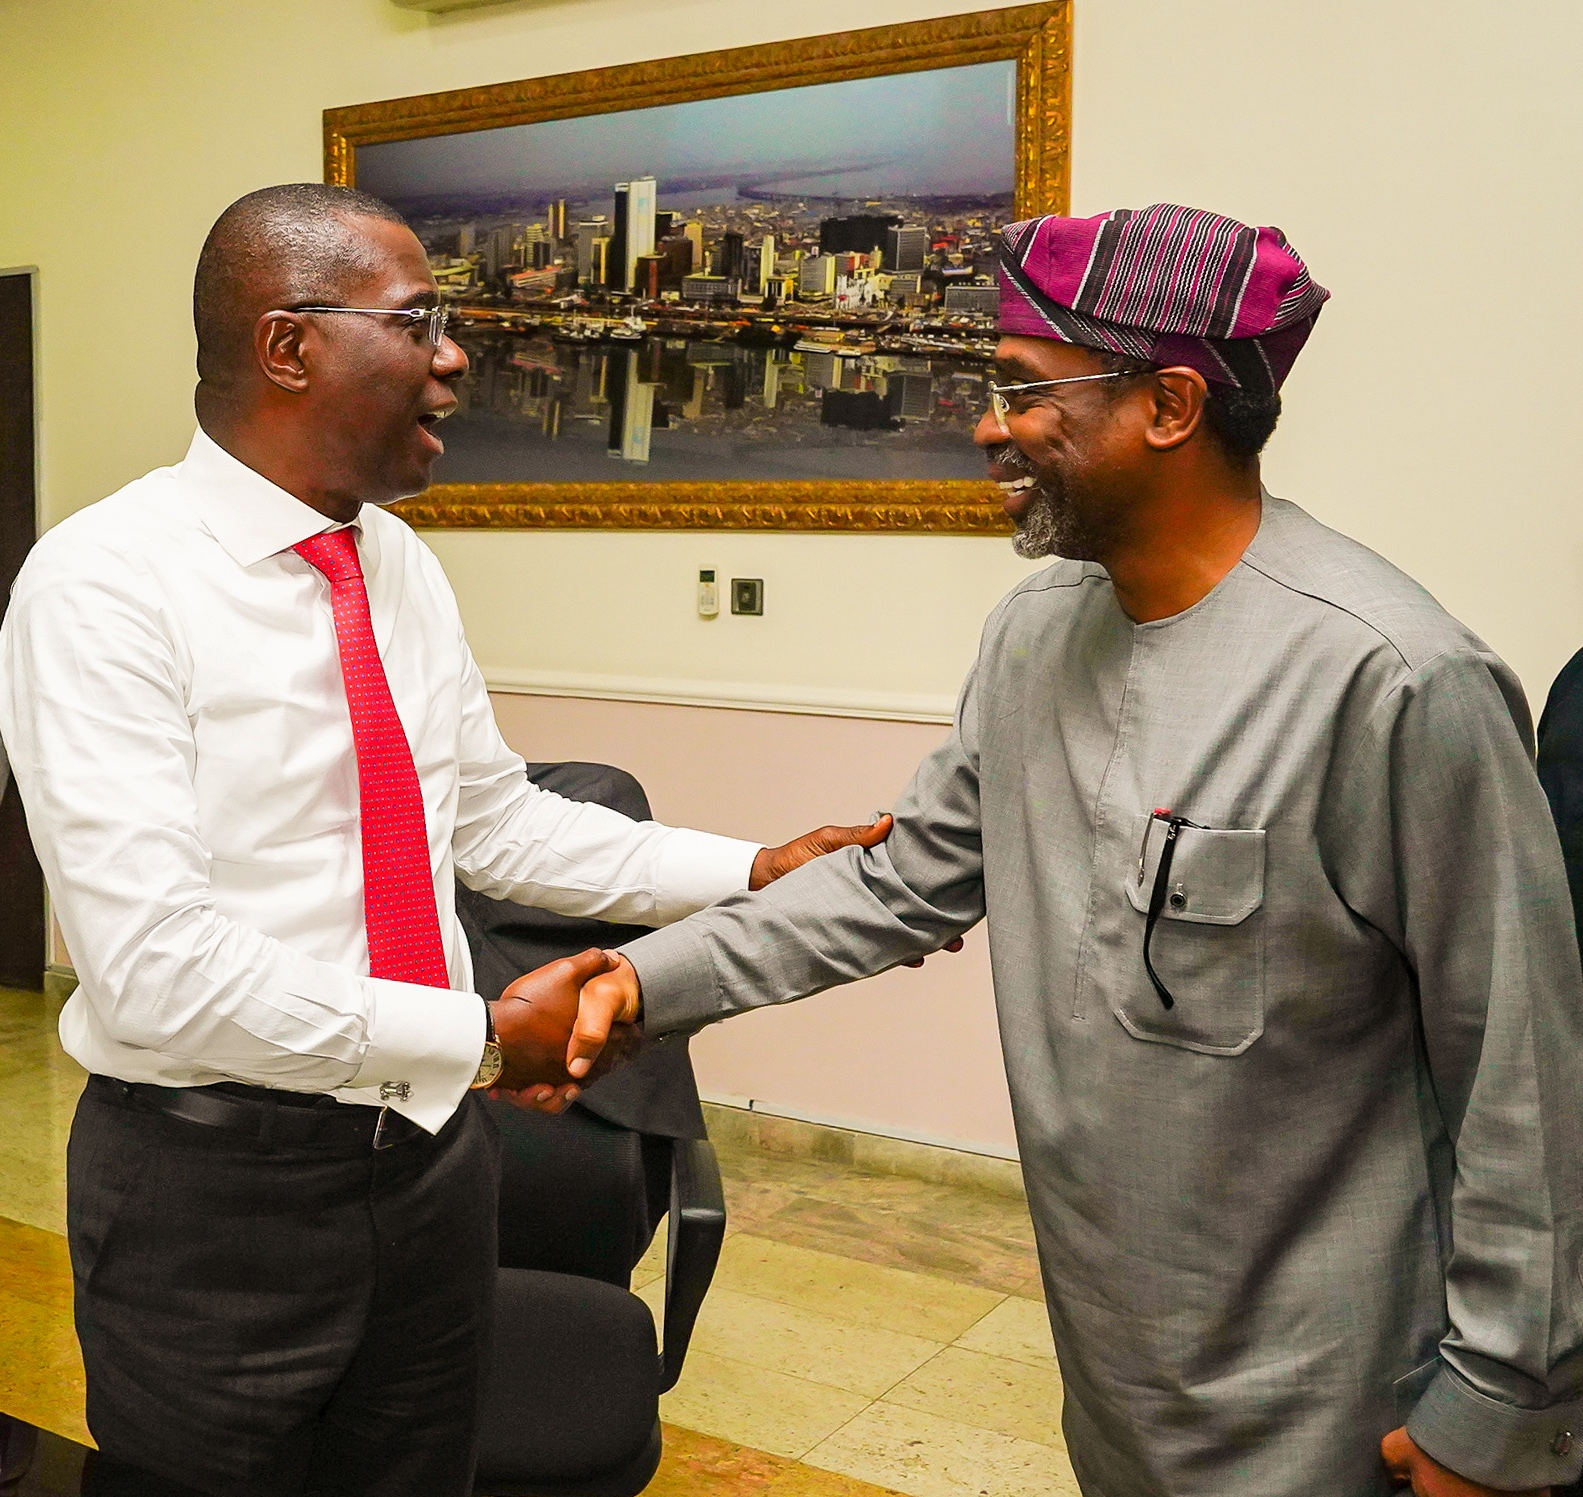 The Lagos State Governor Babajide Sanwo-Olu has received the speaker, House of Representatives, Rt. Hon. Femi Gbajabiamila at the state house Abuja.